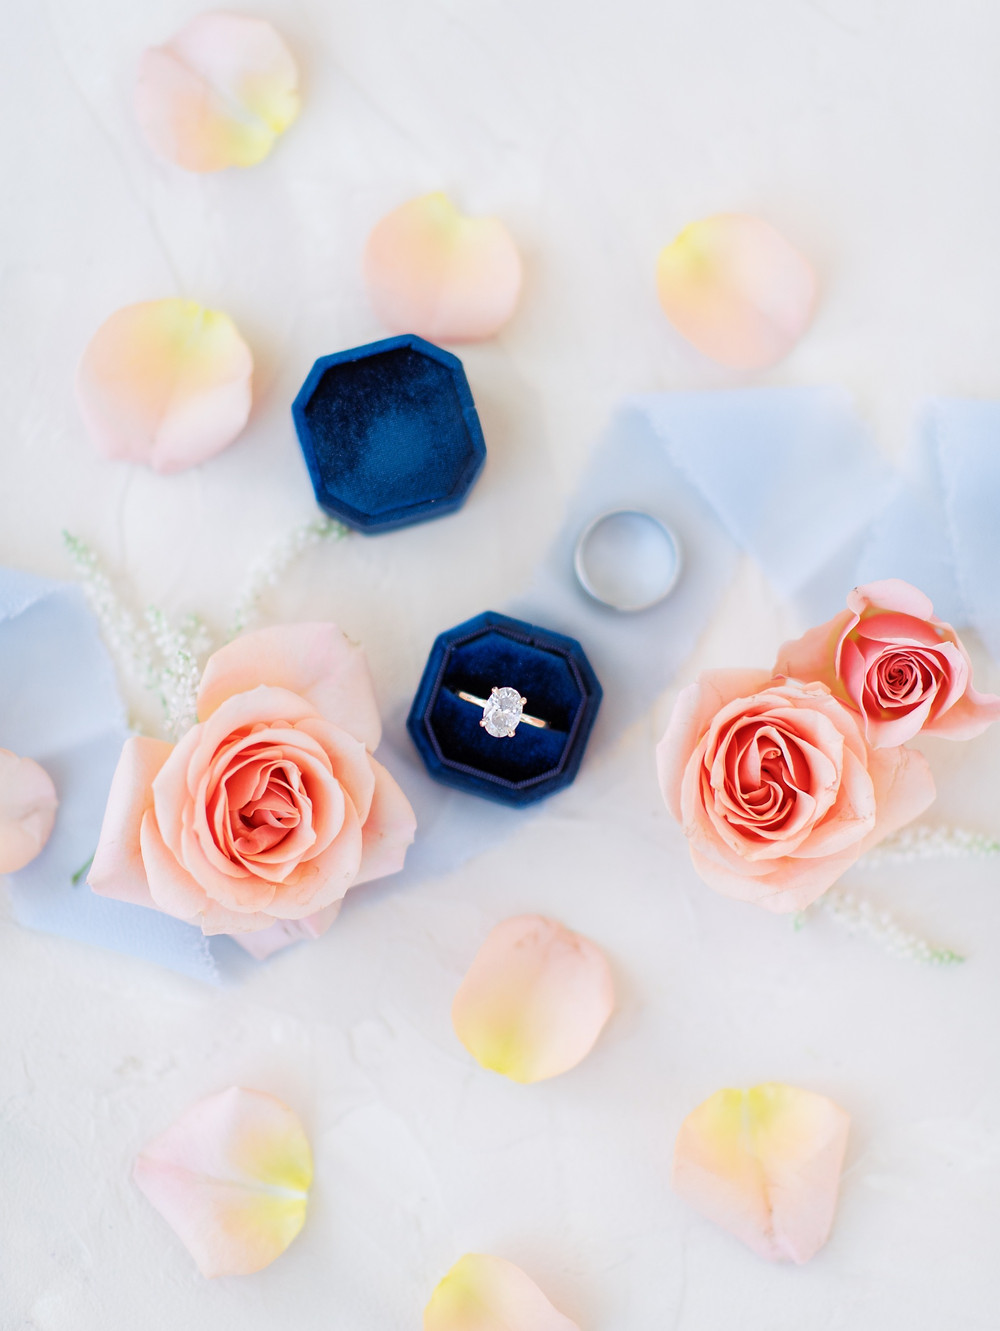 Ring shot of an engagement ring in a blue box with pink roses.